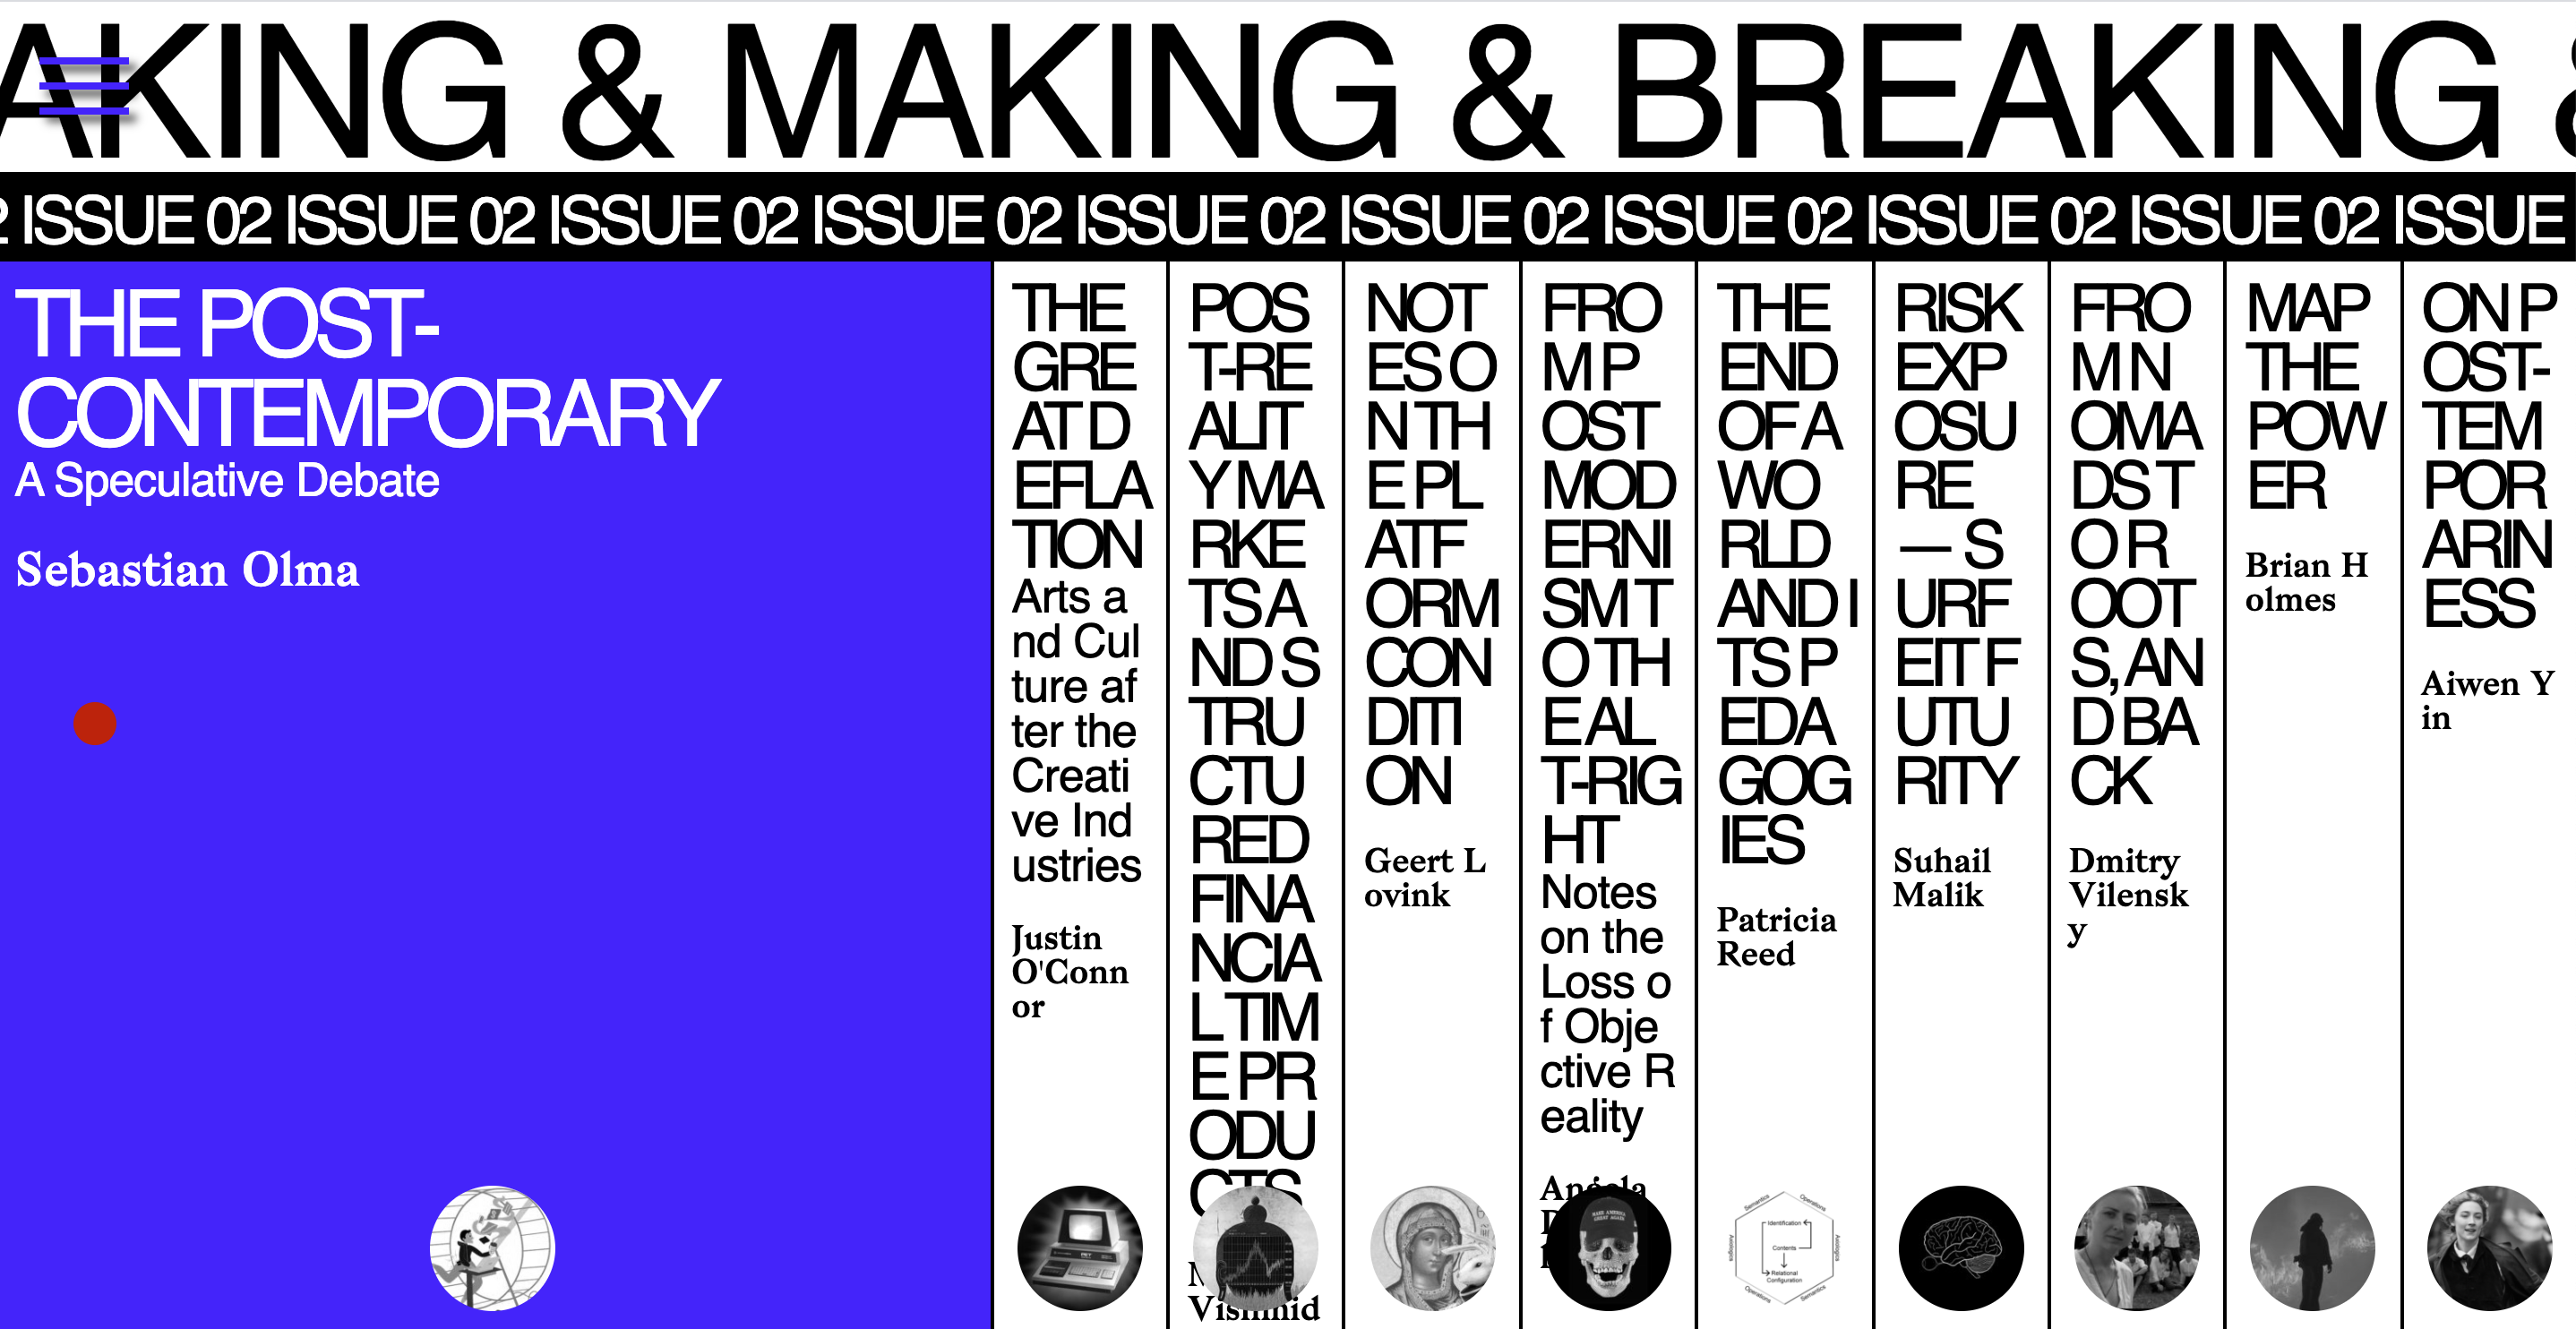 New Issue of Making and Breaking